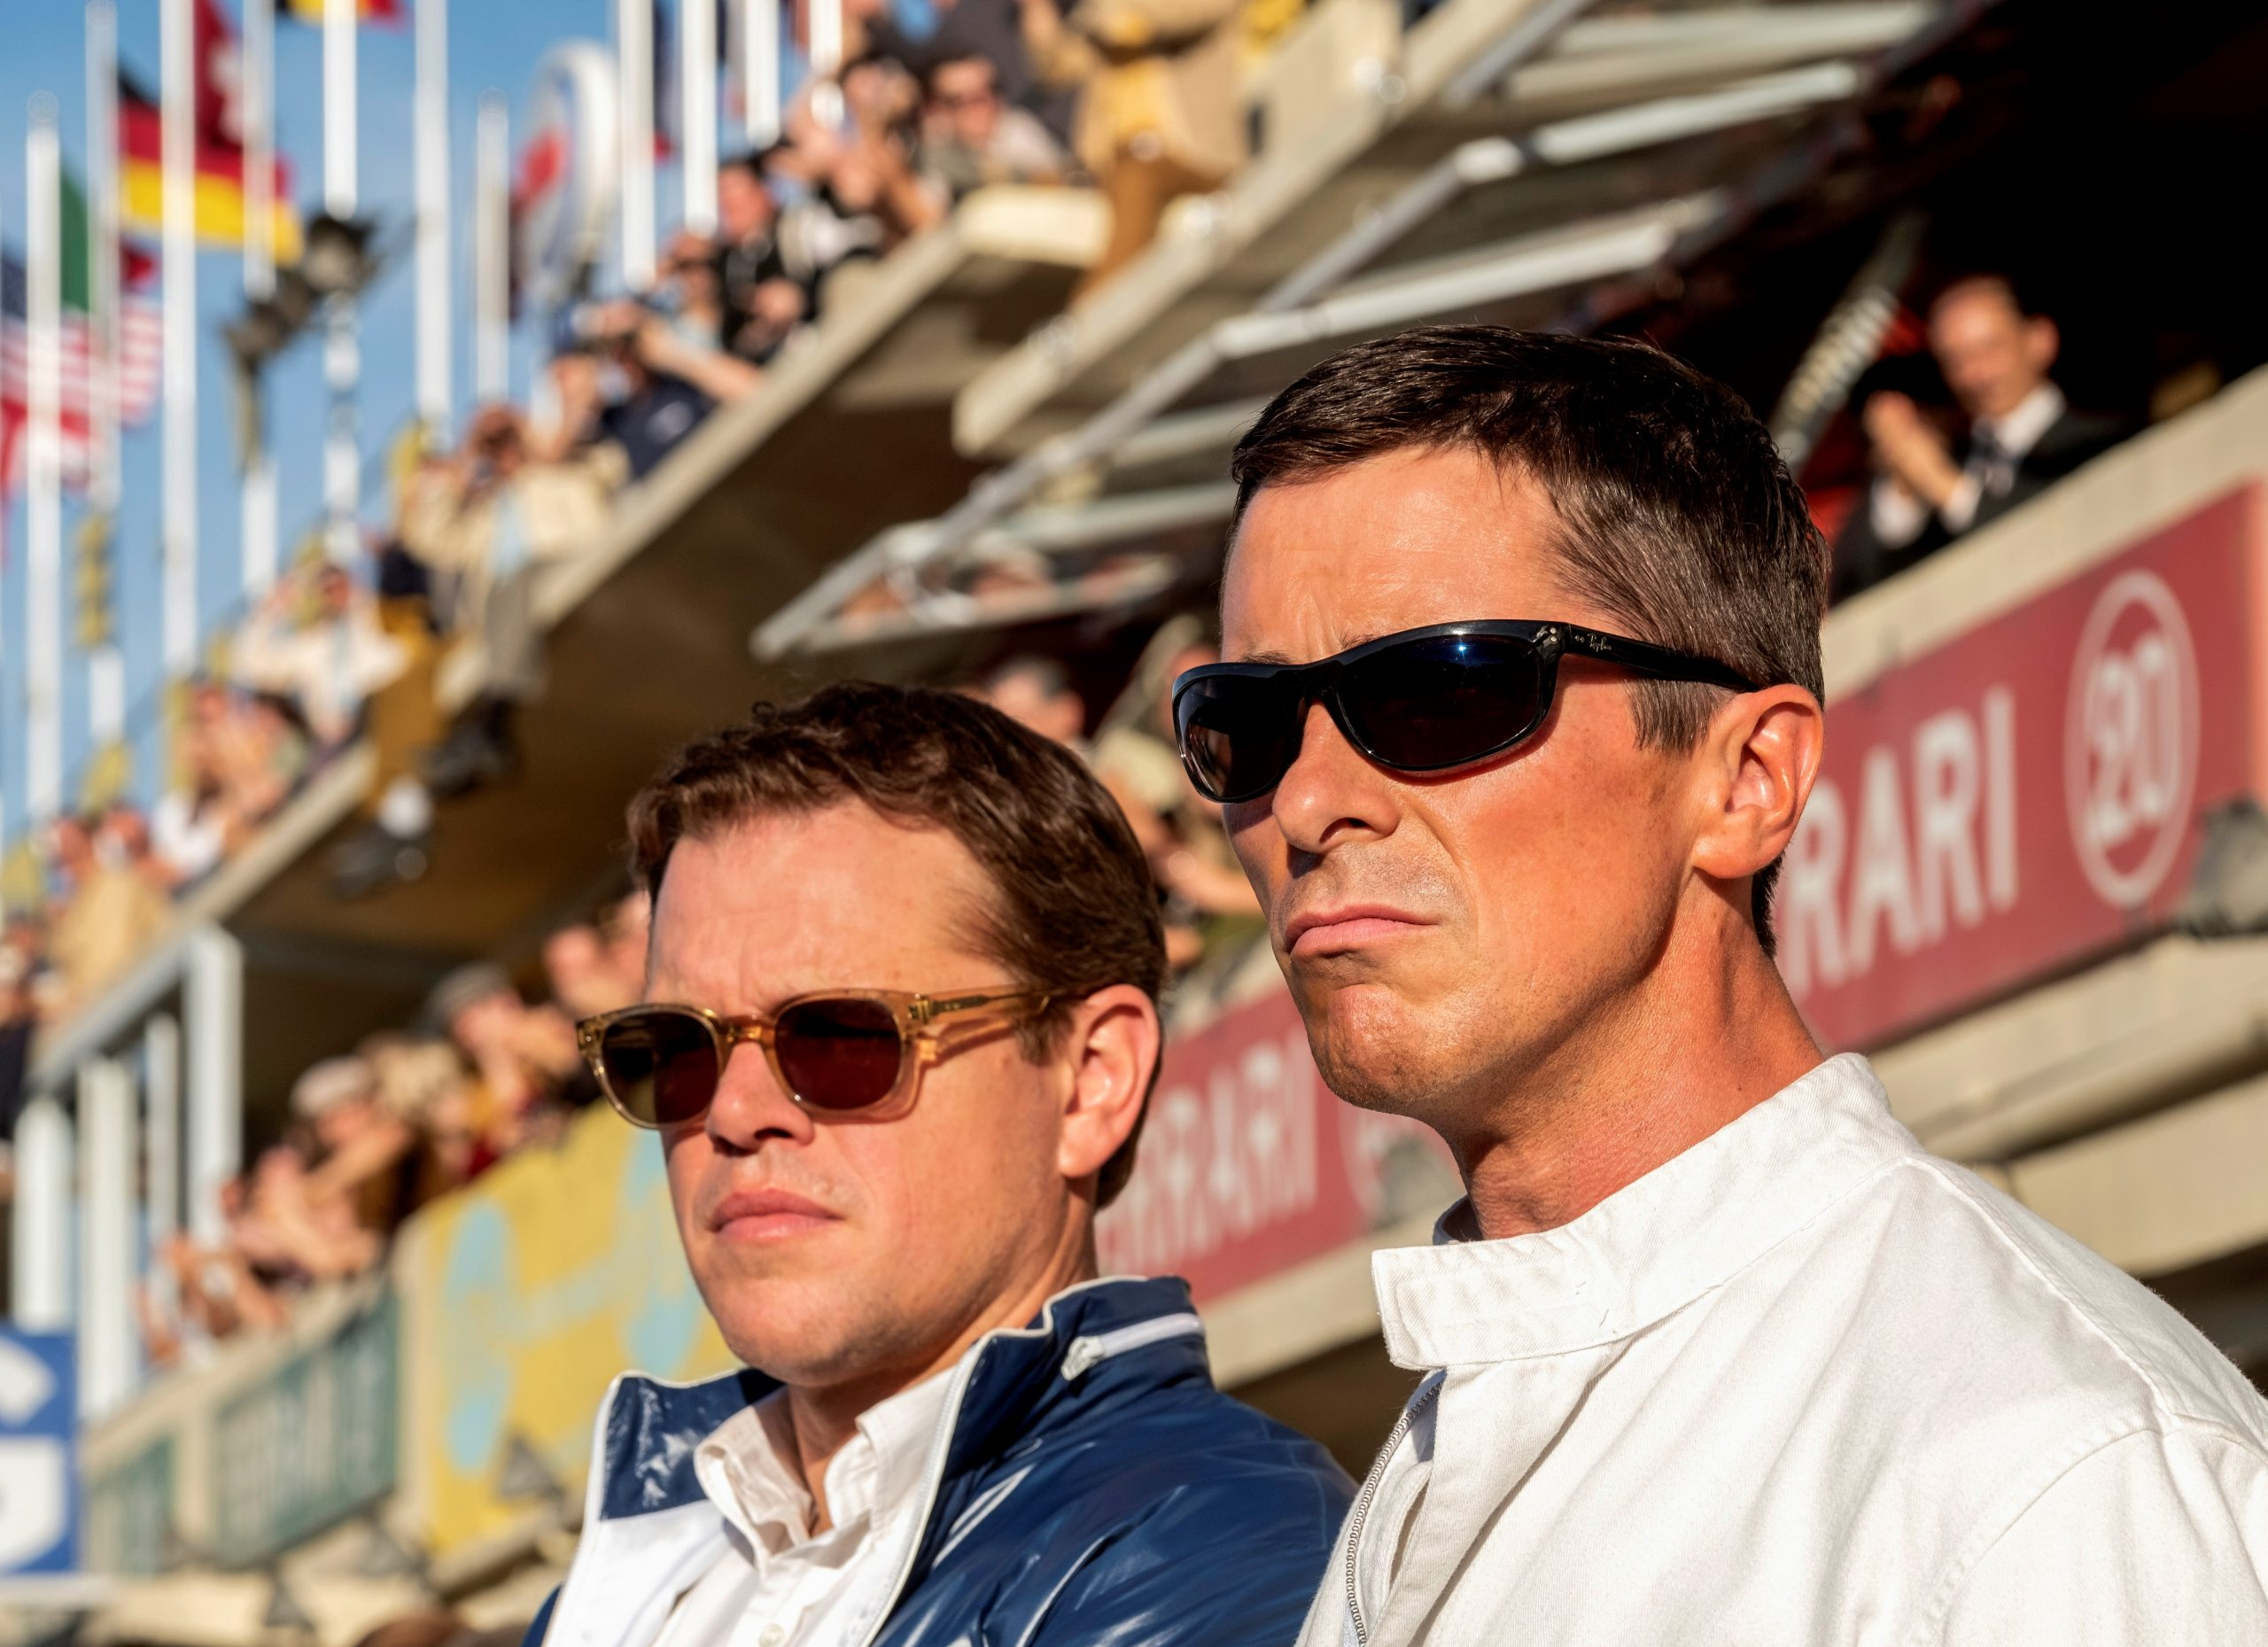 Shelby and Miles have reached the 24 Hours of Les Mans race. Will they beat Ferrari and bring home a victory for Ford?